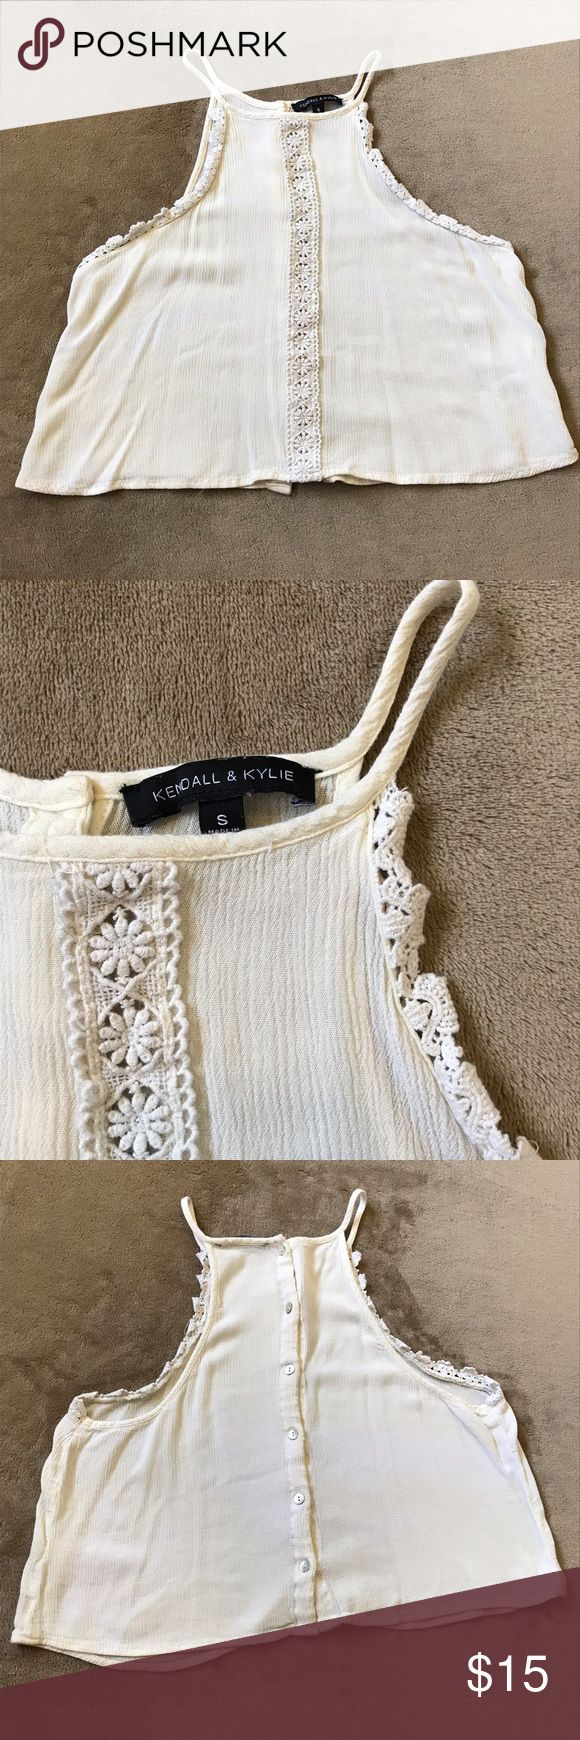 Kendall & Kylie Crop Top Cream colored flare crop top with button up back and lace trim detailing. Size small. 100% rayon. Excellent condition reposh no stains or signs of wear. I just have quite a few similar shirts and I'm trying to downsize Kendall & Kylie Tops Crop Tops